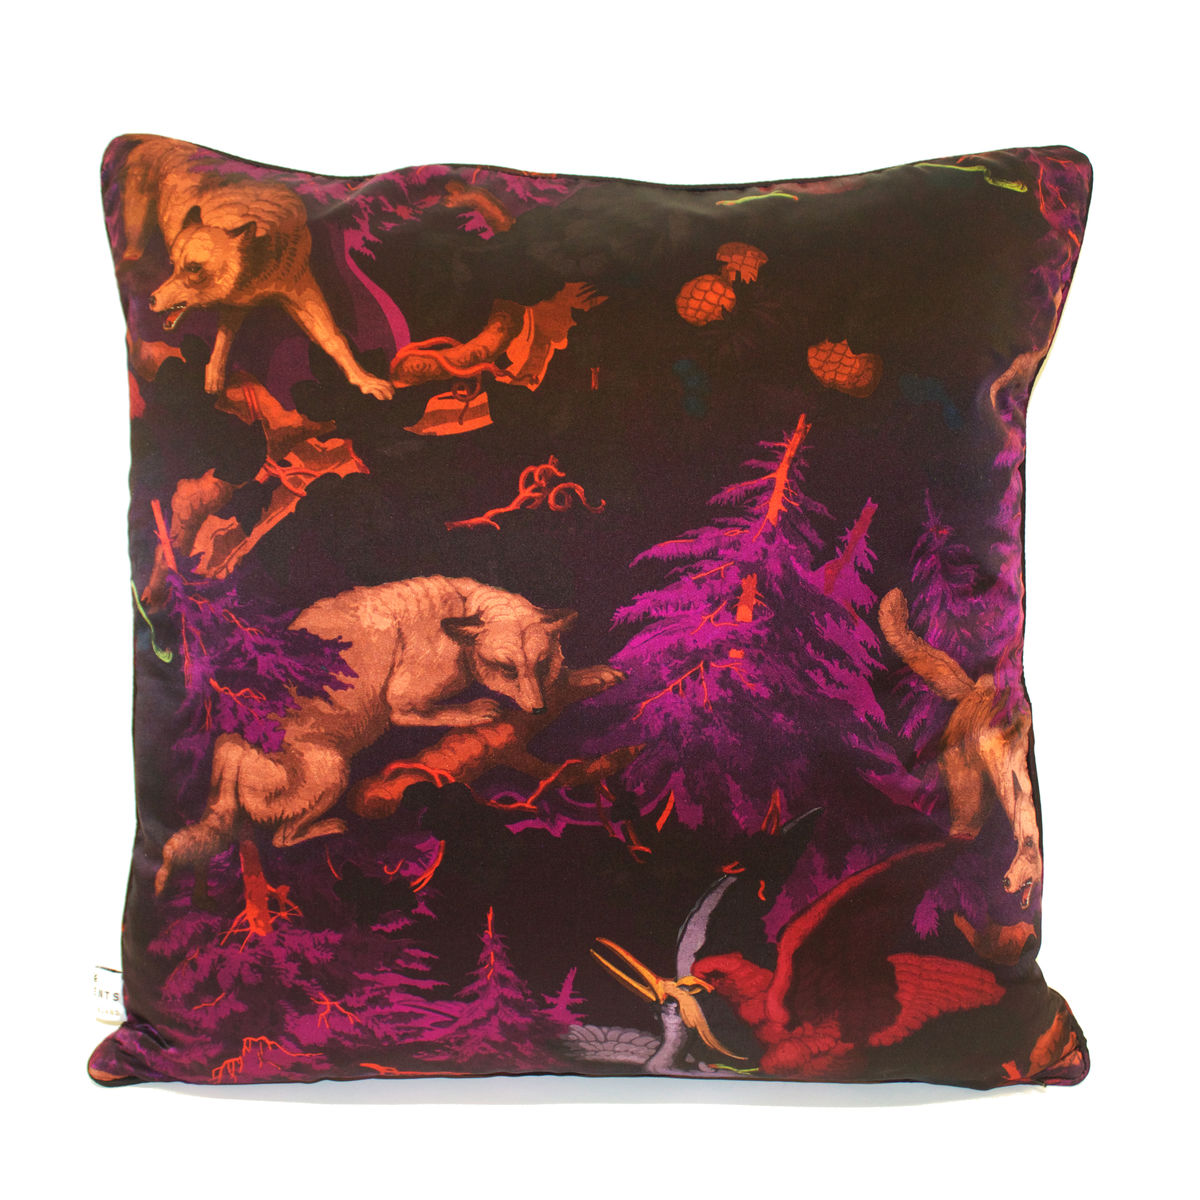 Silk Satin Large Cushion, Bialowieza Forest deep mauve, 60 x 60 cm - product images  of